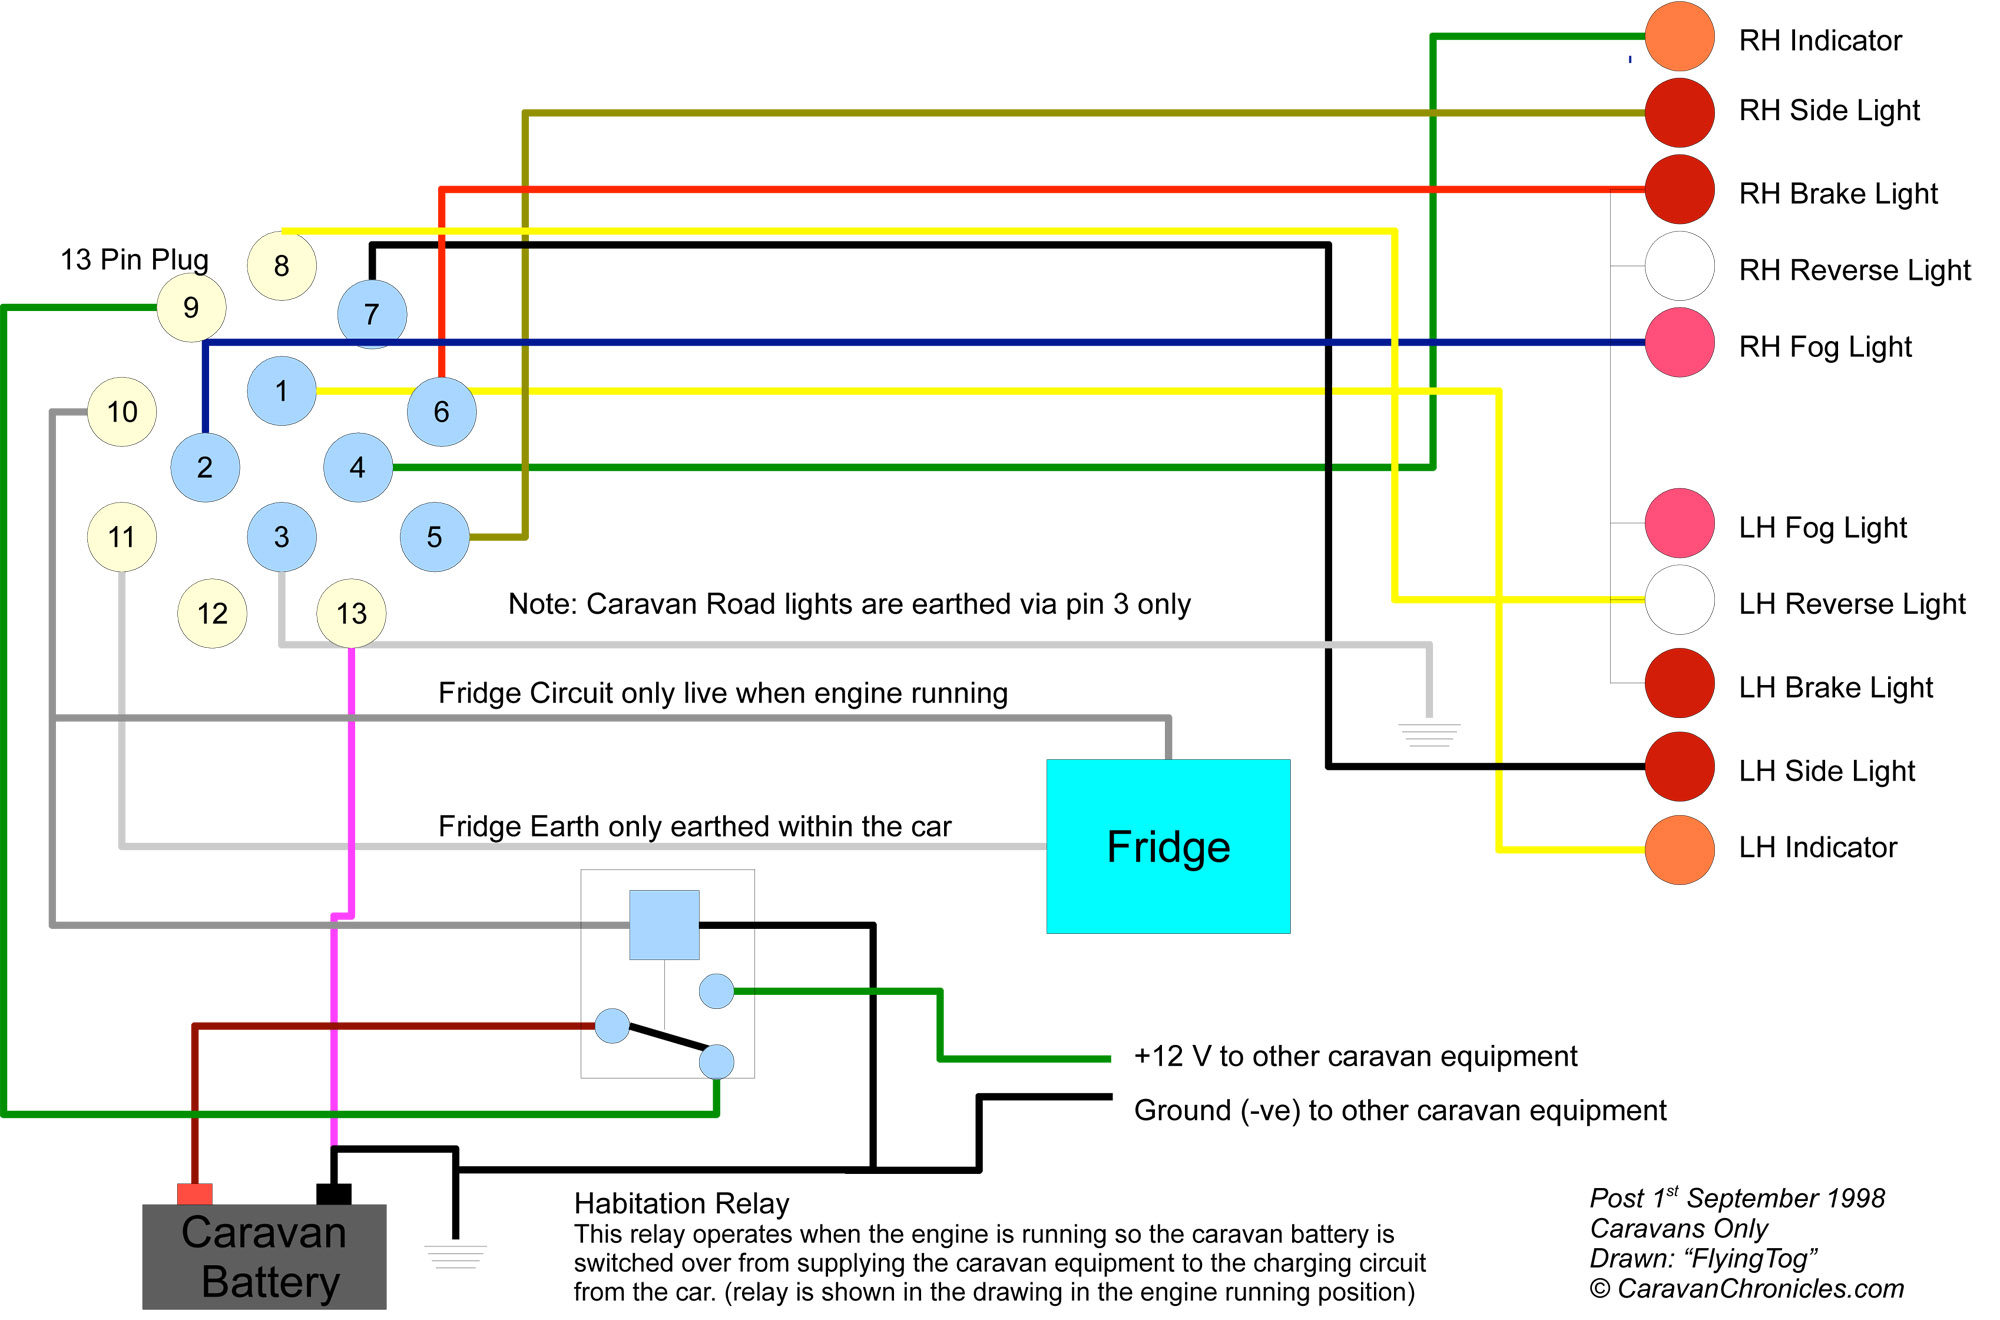 caravan wiring 13 pin understanding caravan and tow car electrics caravan chronicles caravan 12v wiring diagram at gsmportal.co